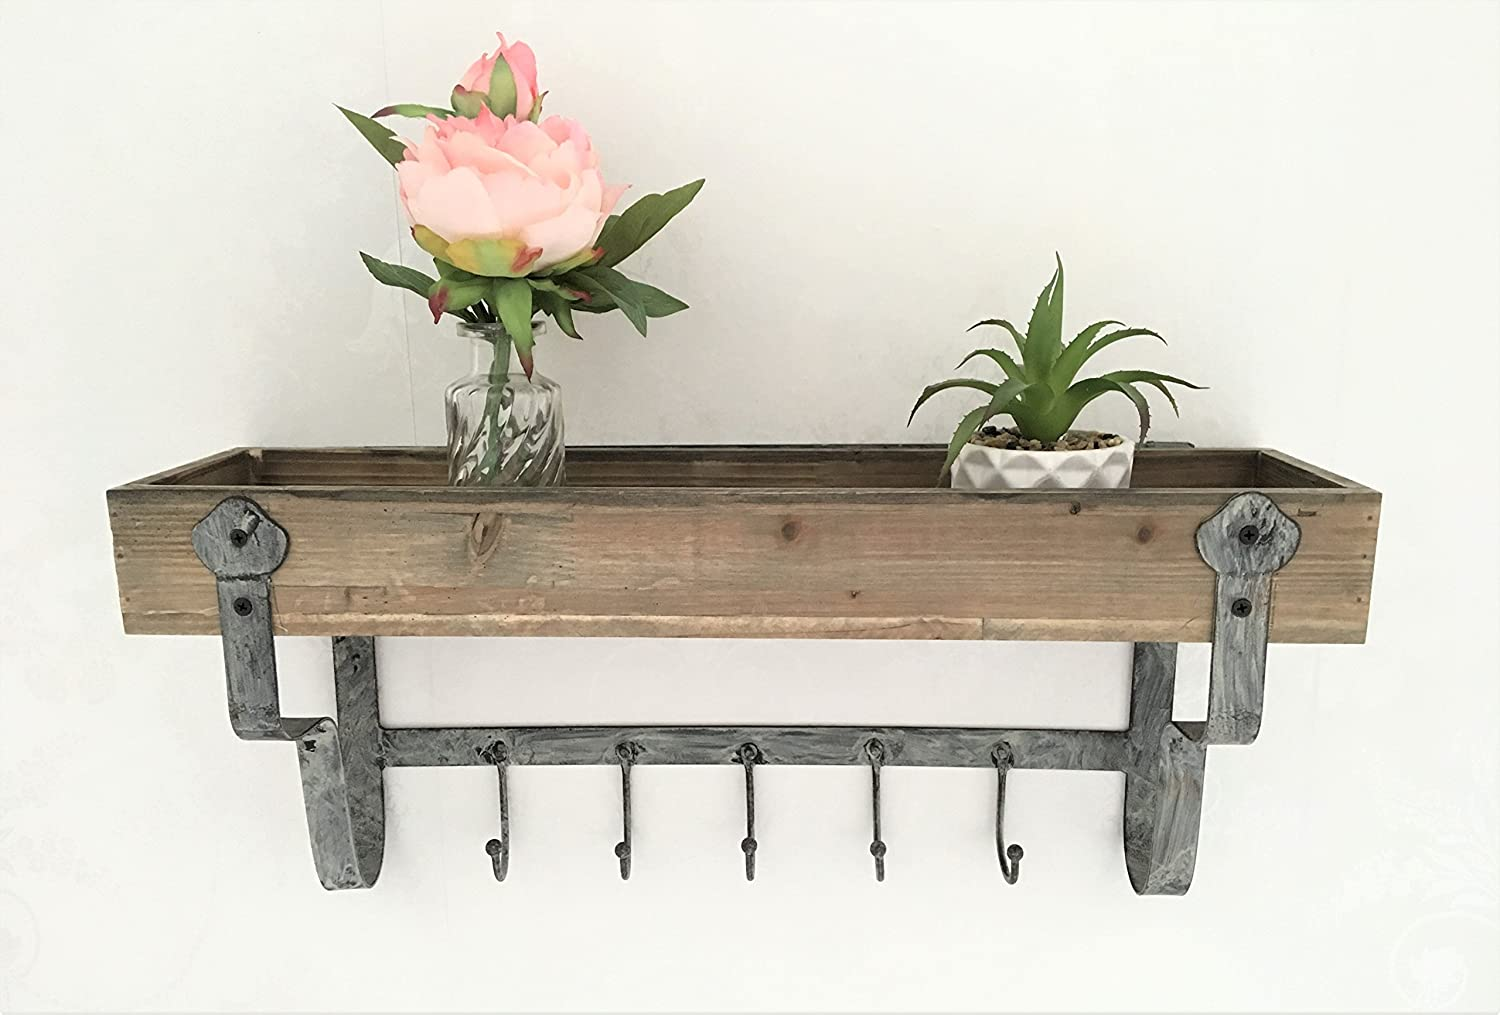 Wood & Metal Wall Shelf Unit Vintage Industrial Style Kitchen Towel Hook Storage Spice Rack Home Storage